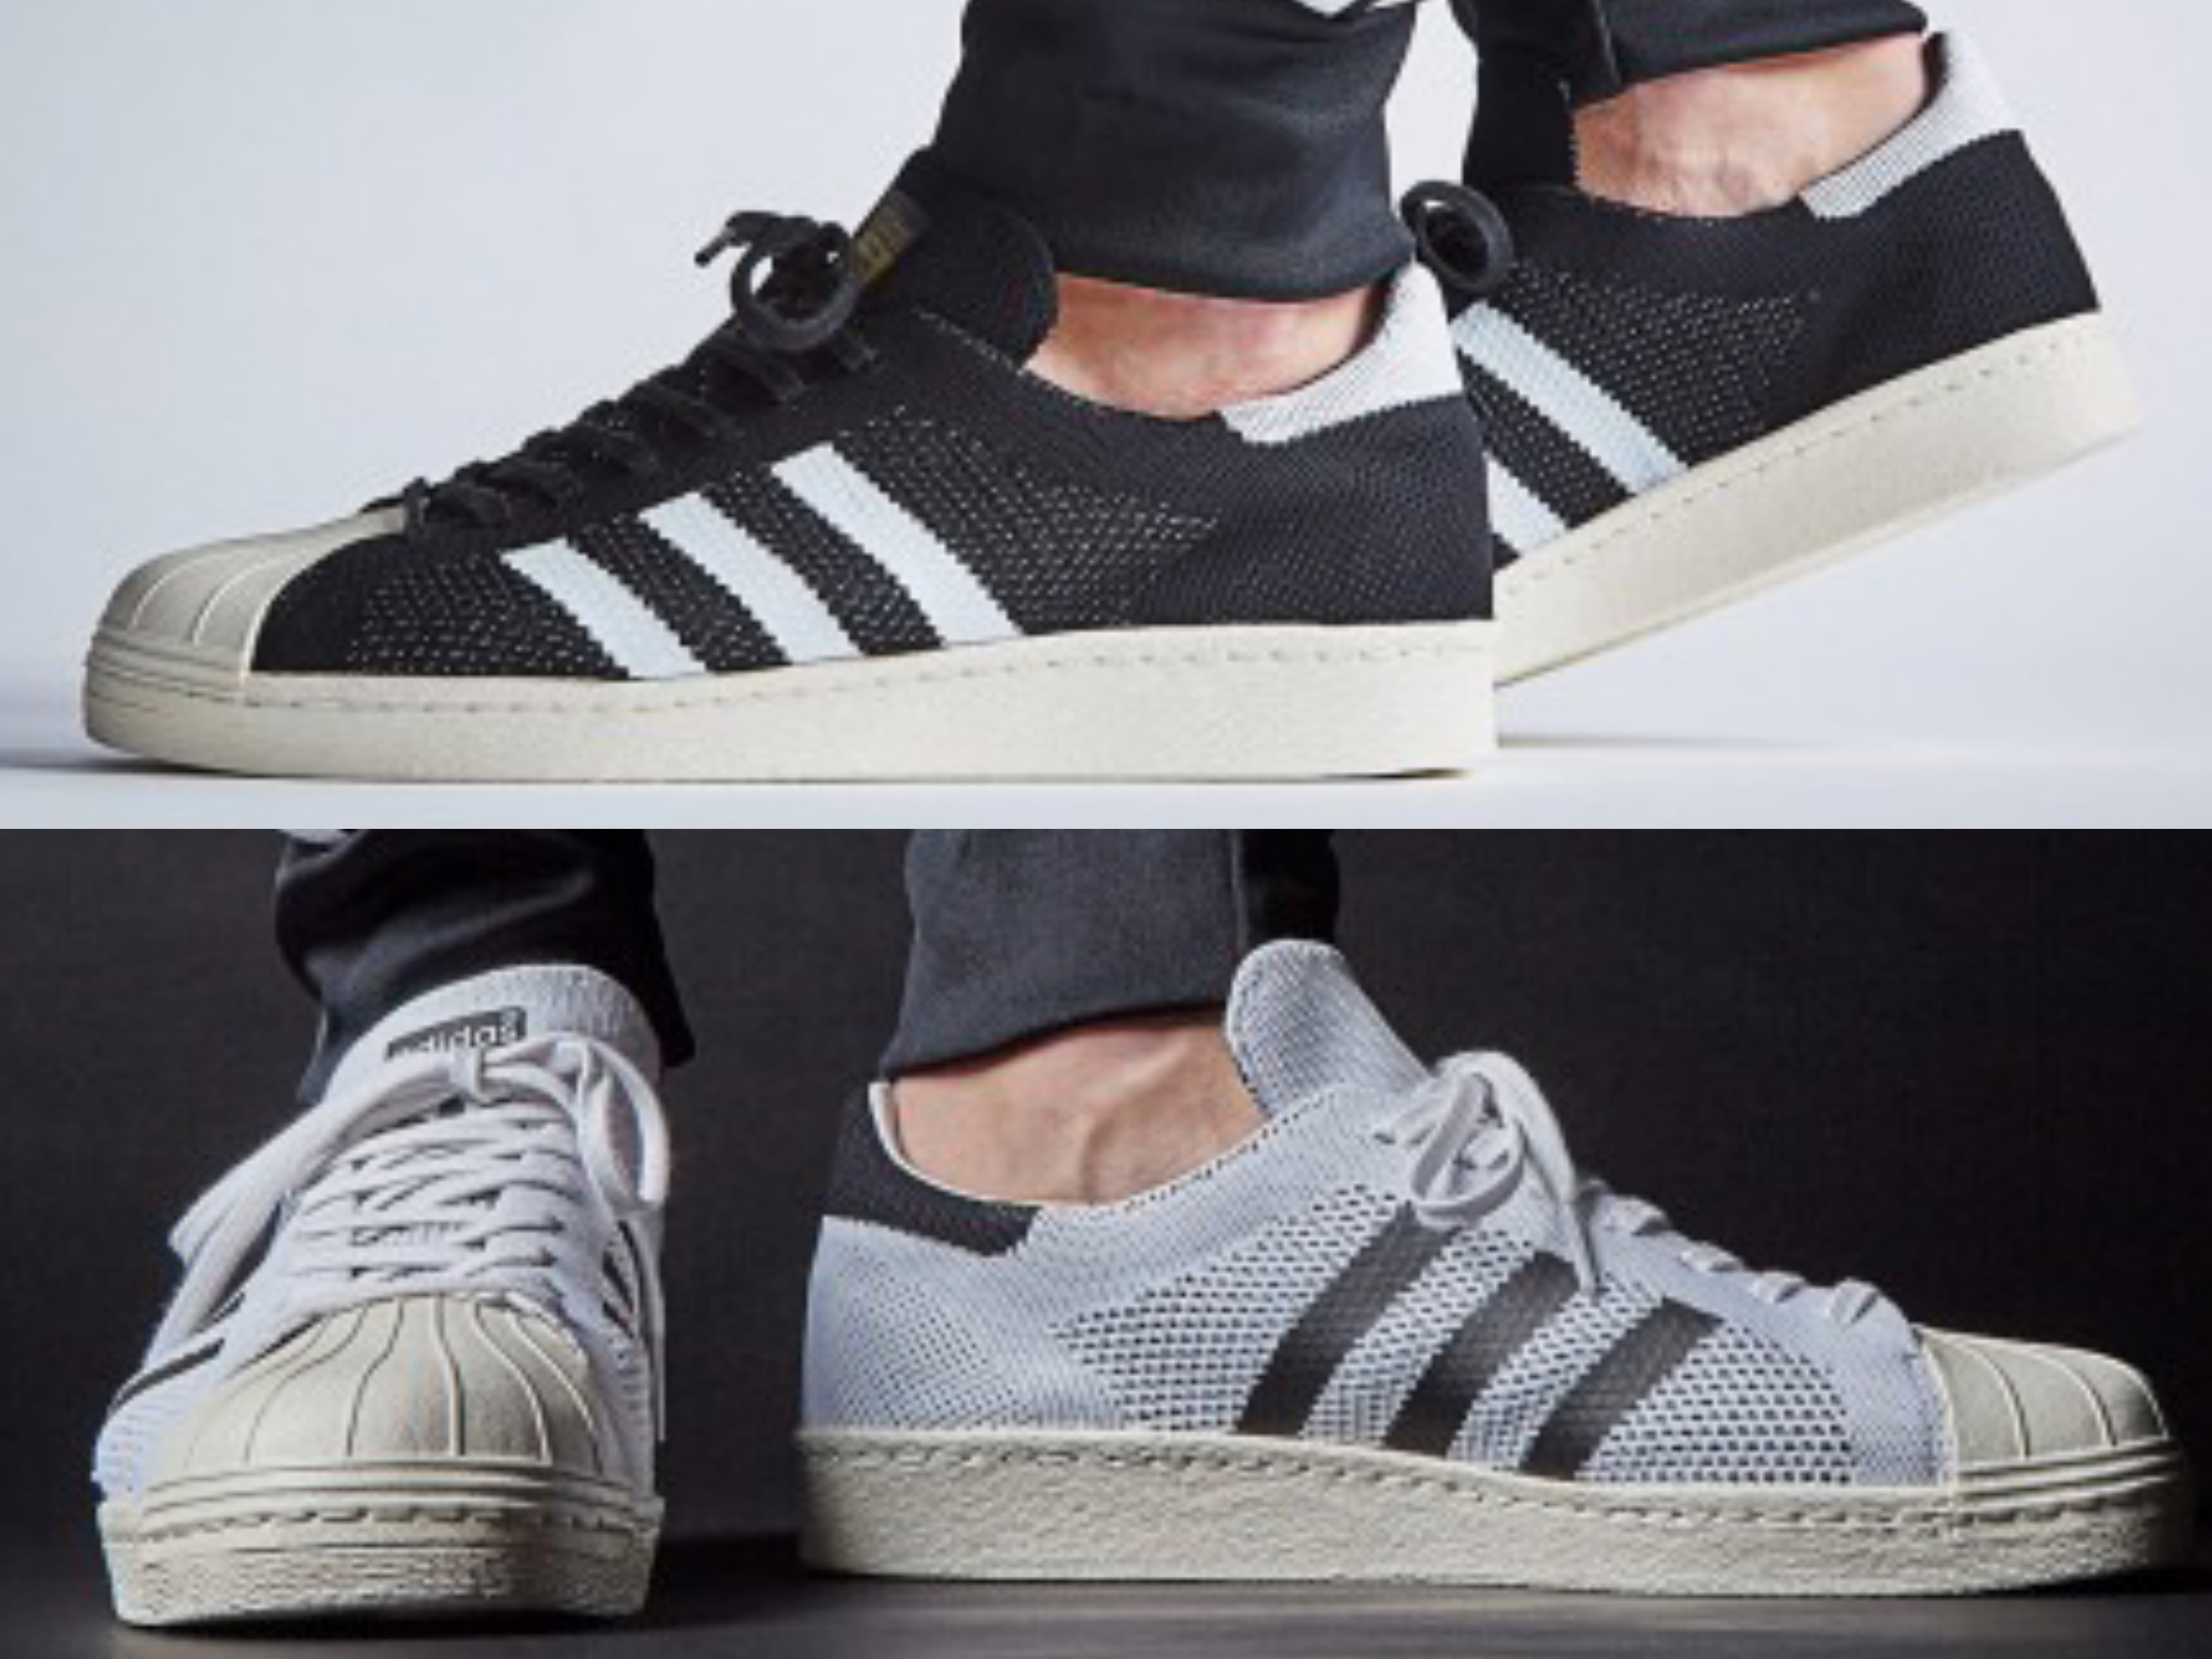 adidas superstar 80s primeknit black and white